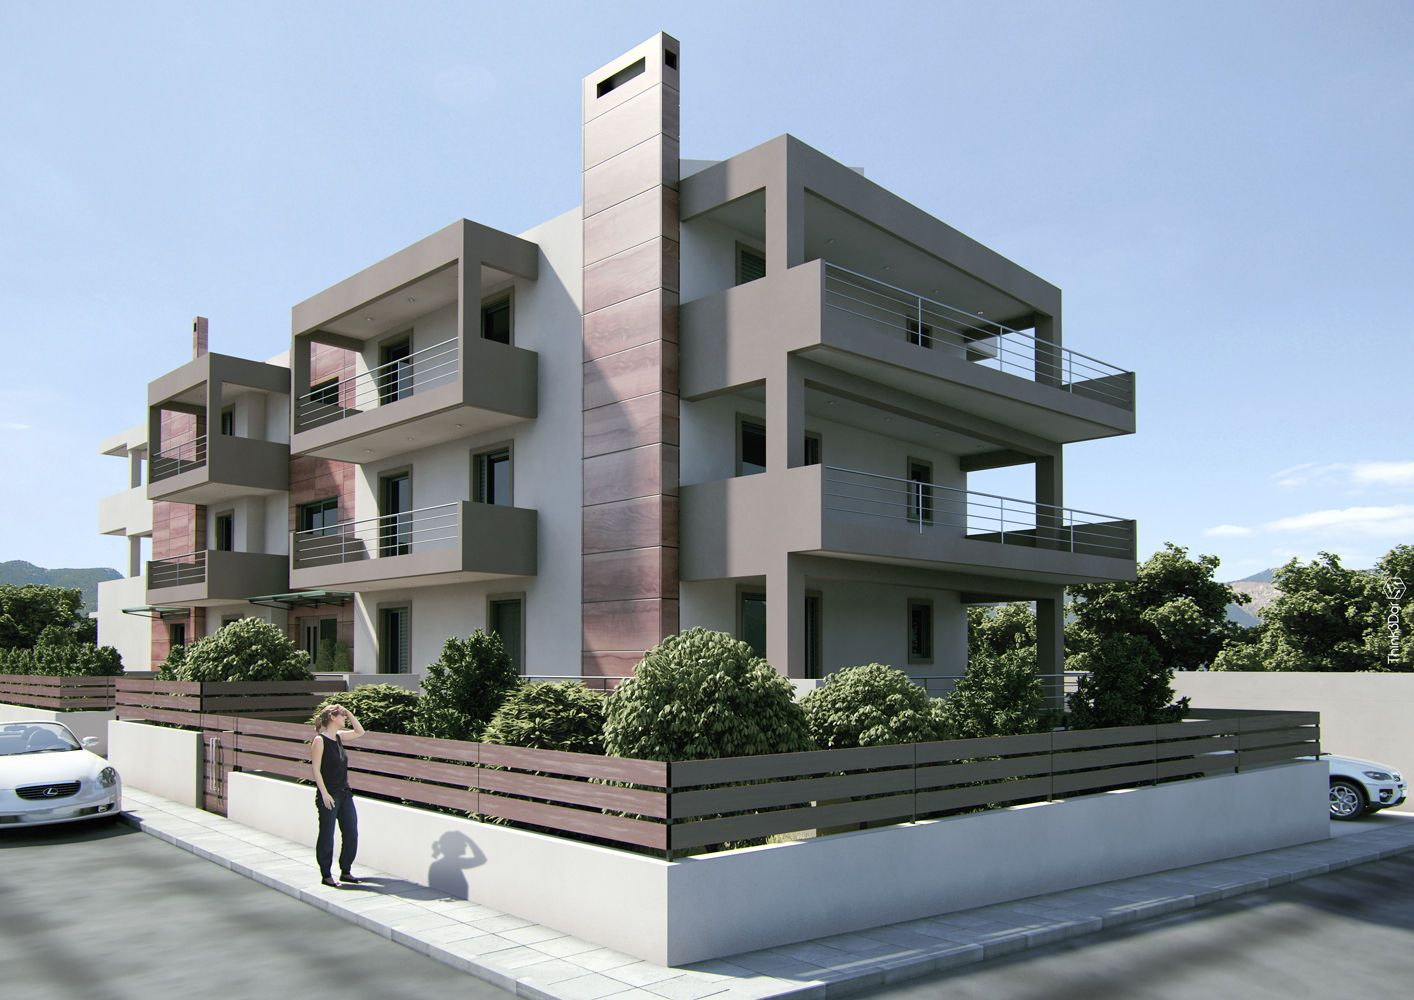 Amazing Design Modern Small Apartment Complex With Casabase Gerakas 3 Large